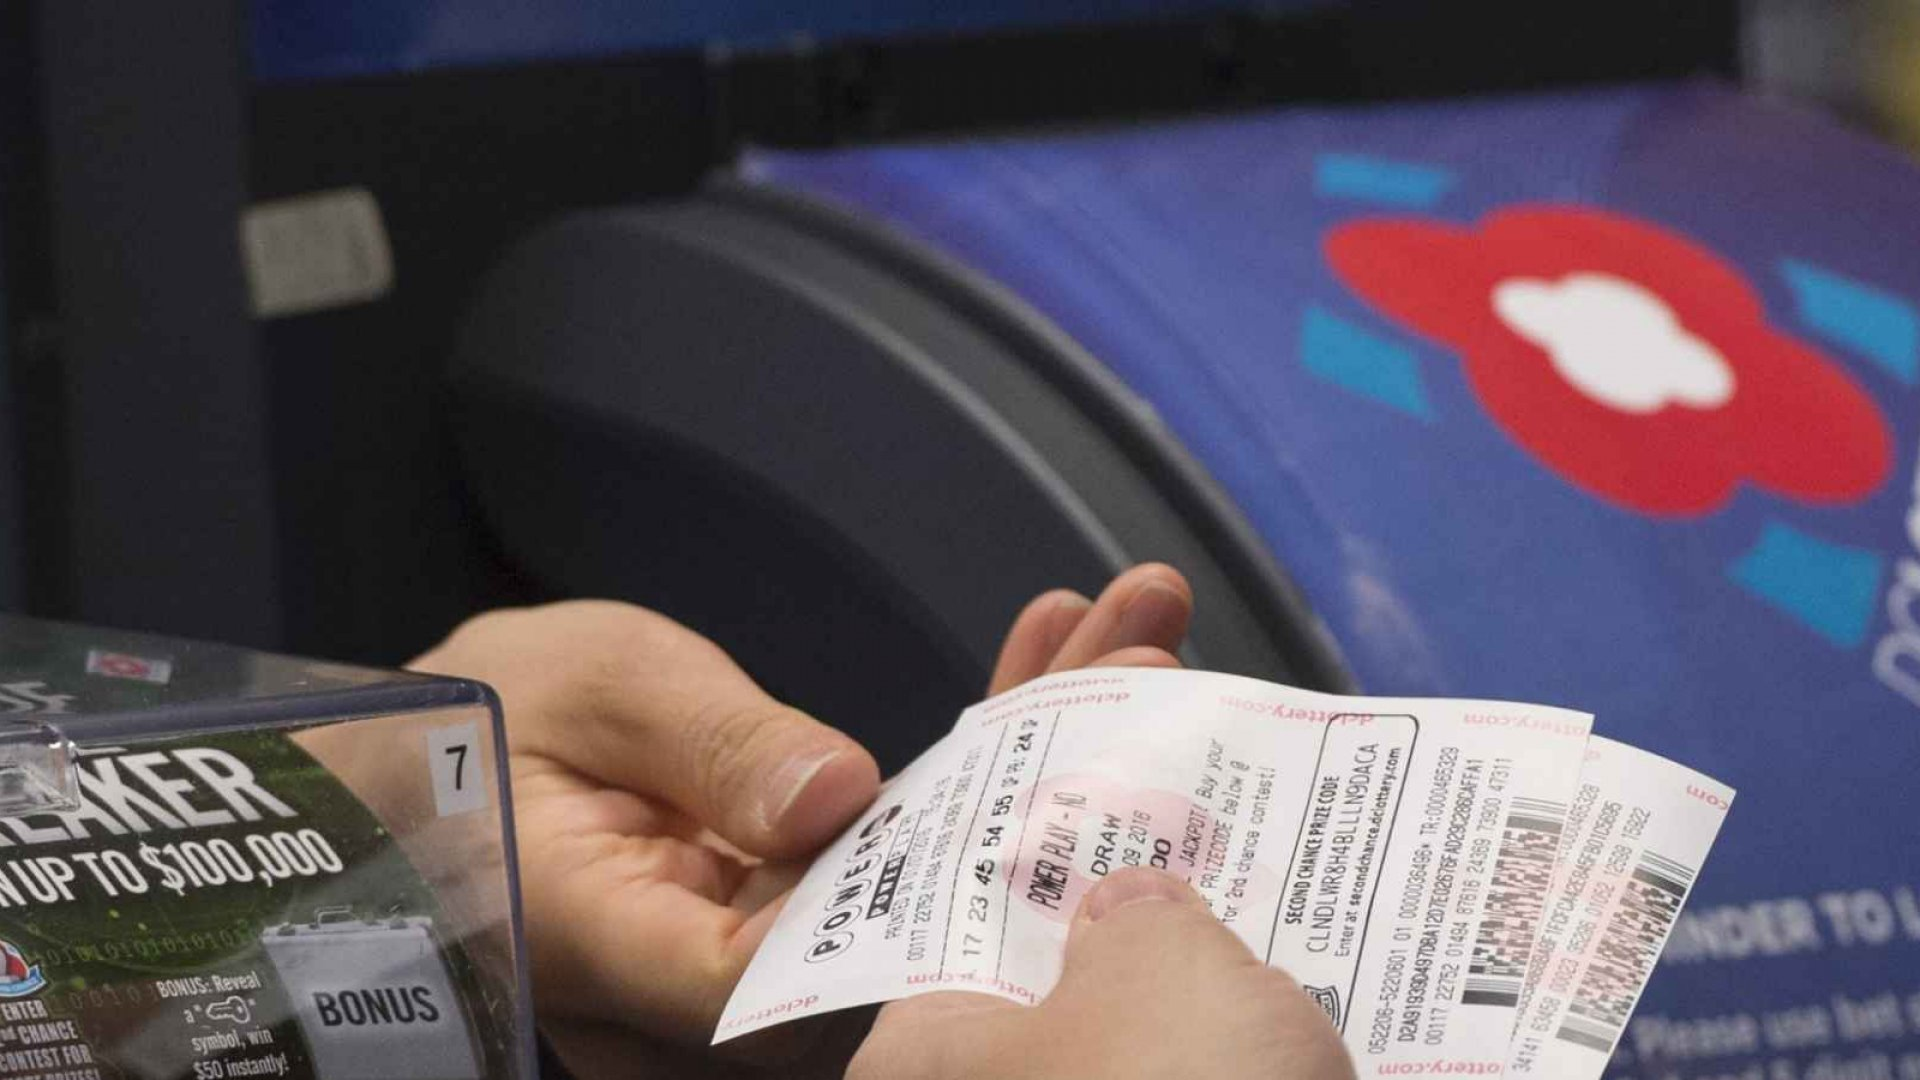 Why Winning the $1.3 Billion Powerball Lottery Will Not Make You Happy